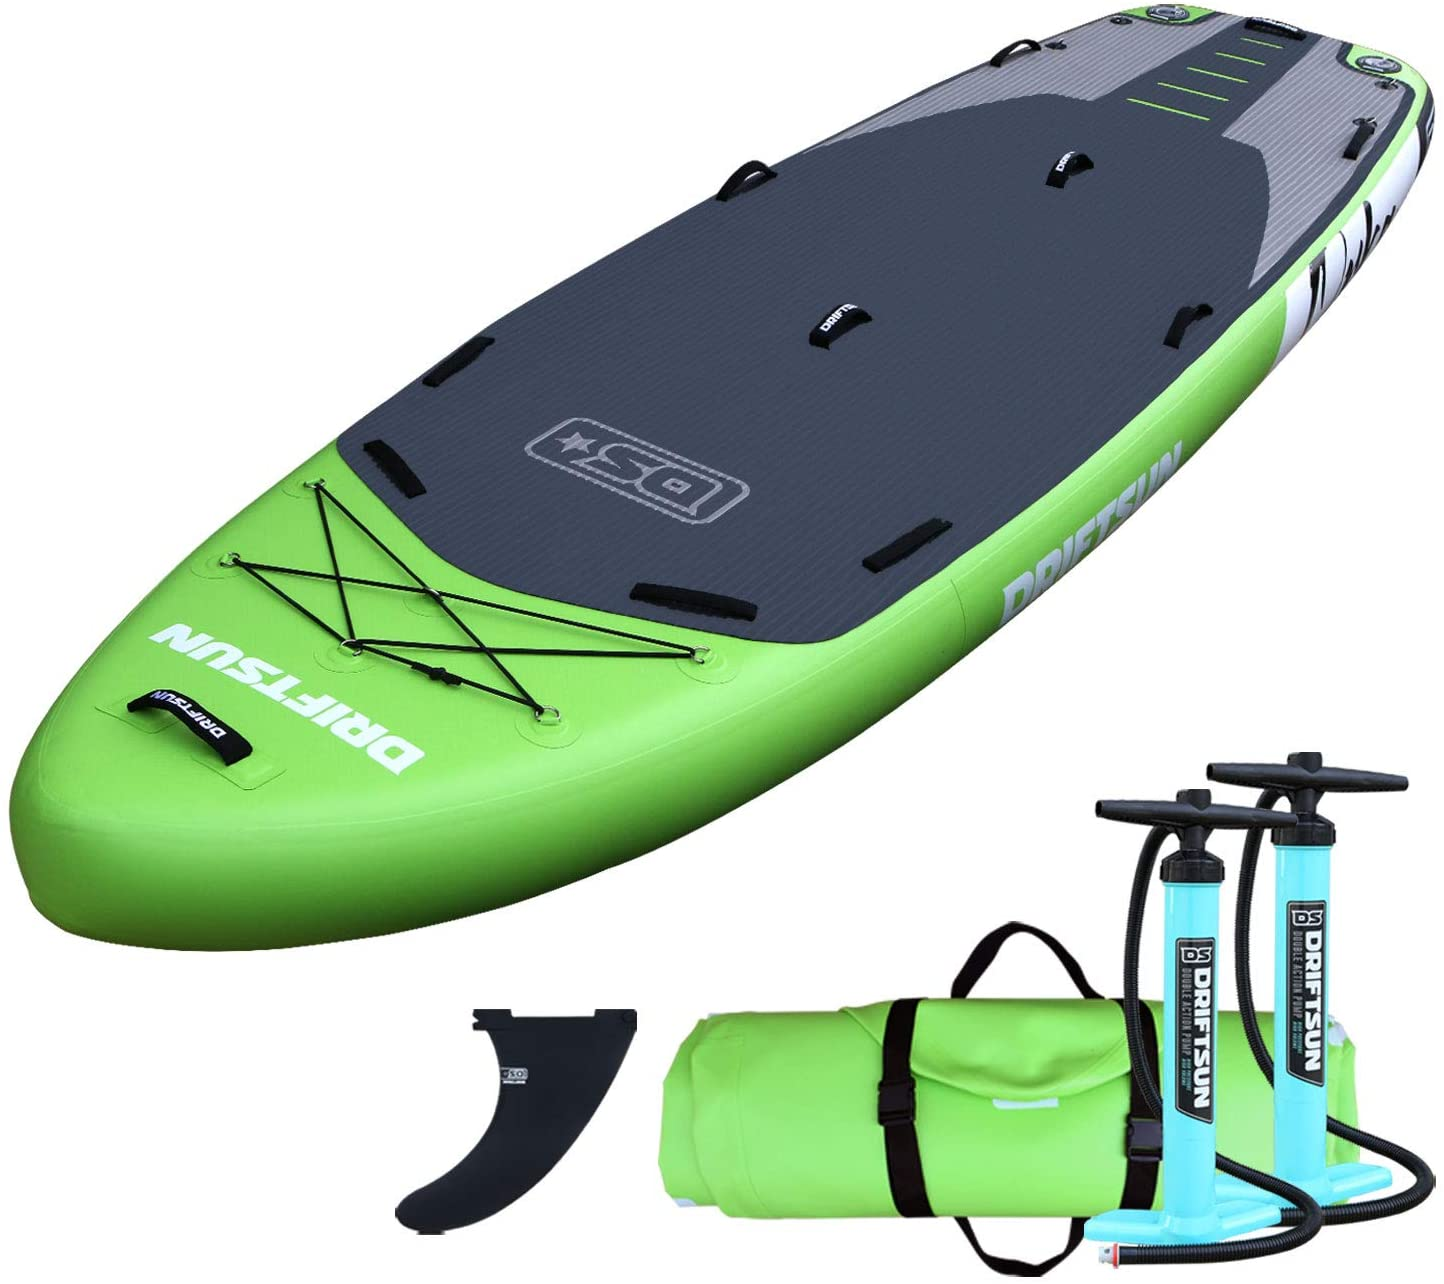 Driftsun Orka 12 Foot Extra Wide Multi Person Inflatable Paddle Board Stand Up SUP